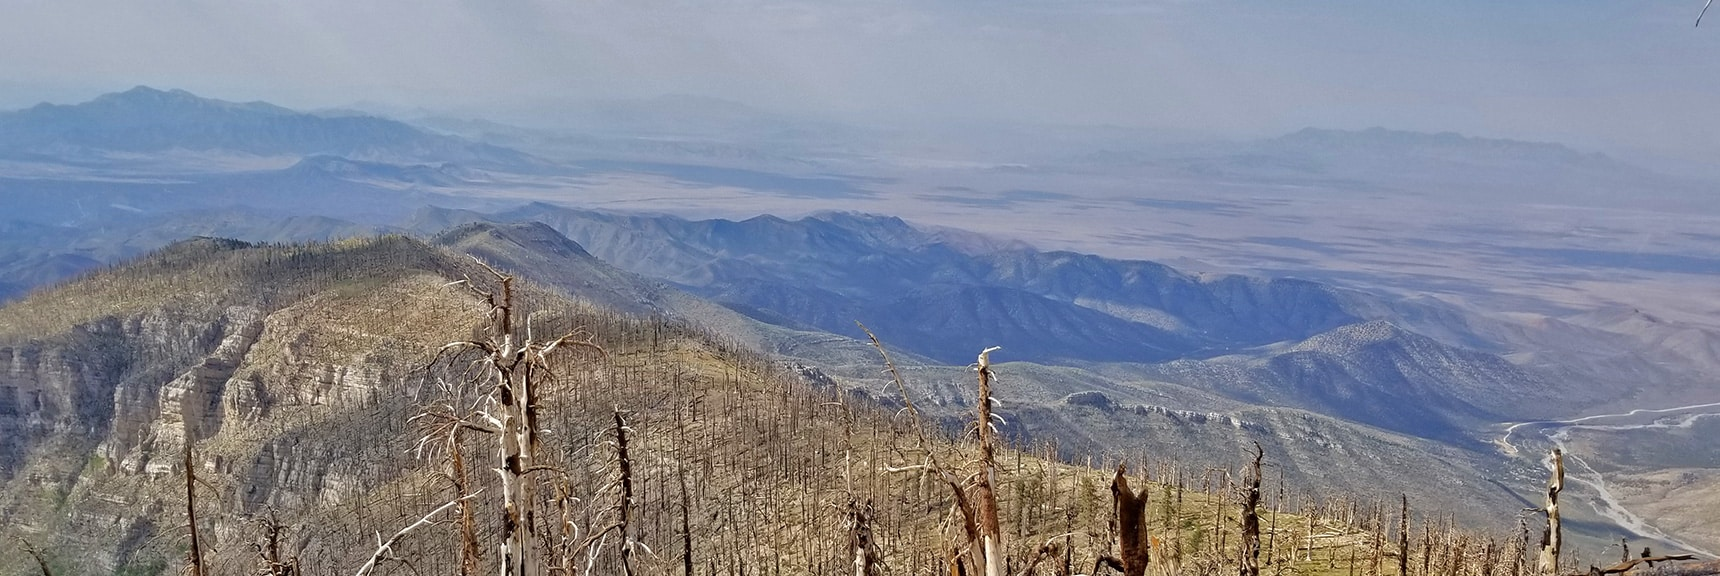 Ancient Bristlecone Pine Forest on Sexton Ridge Was Burned Out Around 2013 | Sexton Ridge Descent from Griffith Peak, Mt. Charleston Wilderness, Spring Mountains, Nevada